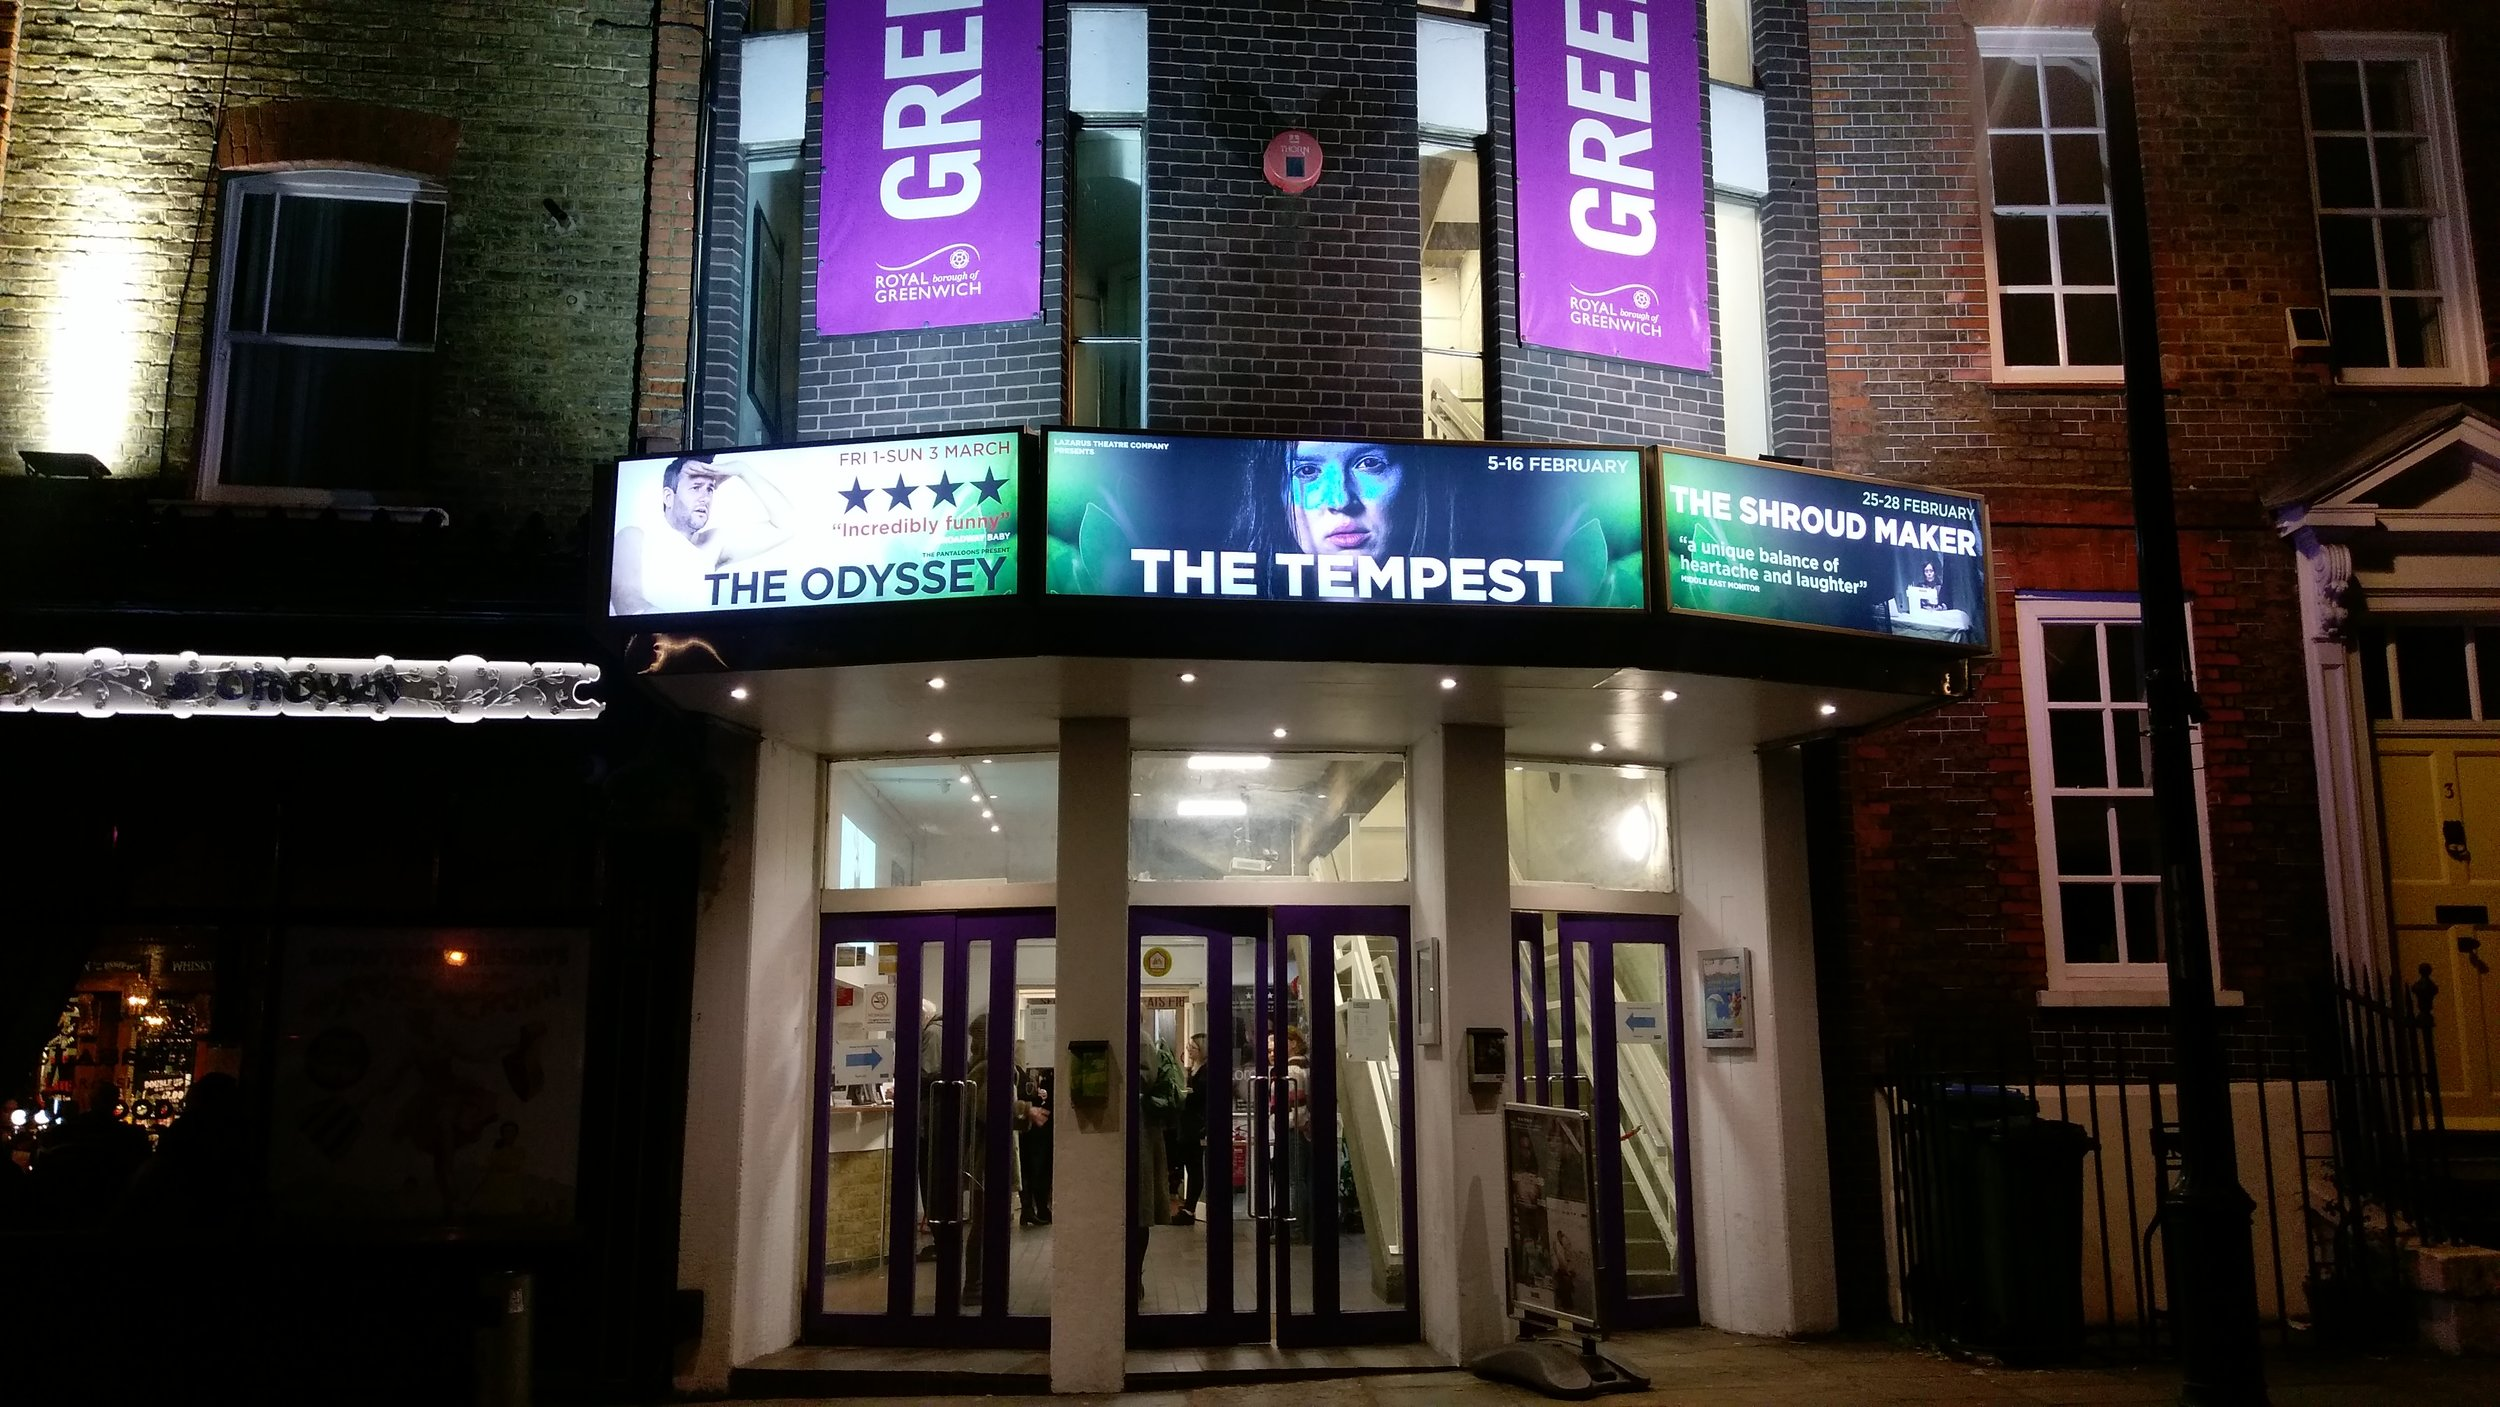 Greenwich Theatre - visited 19/02/2019